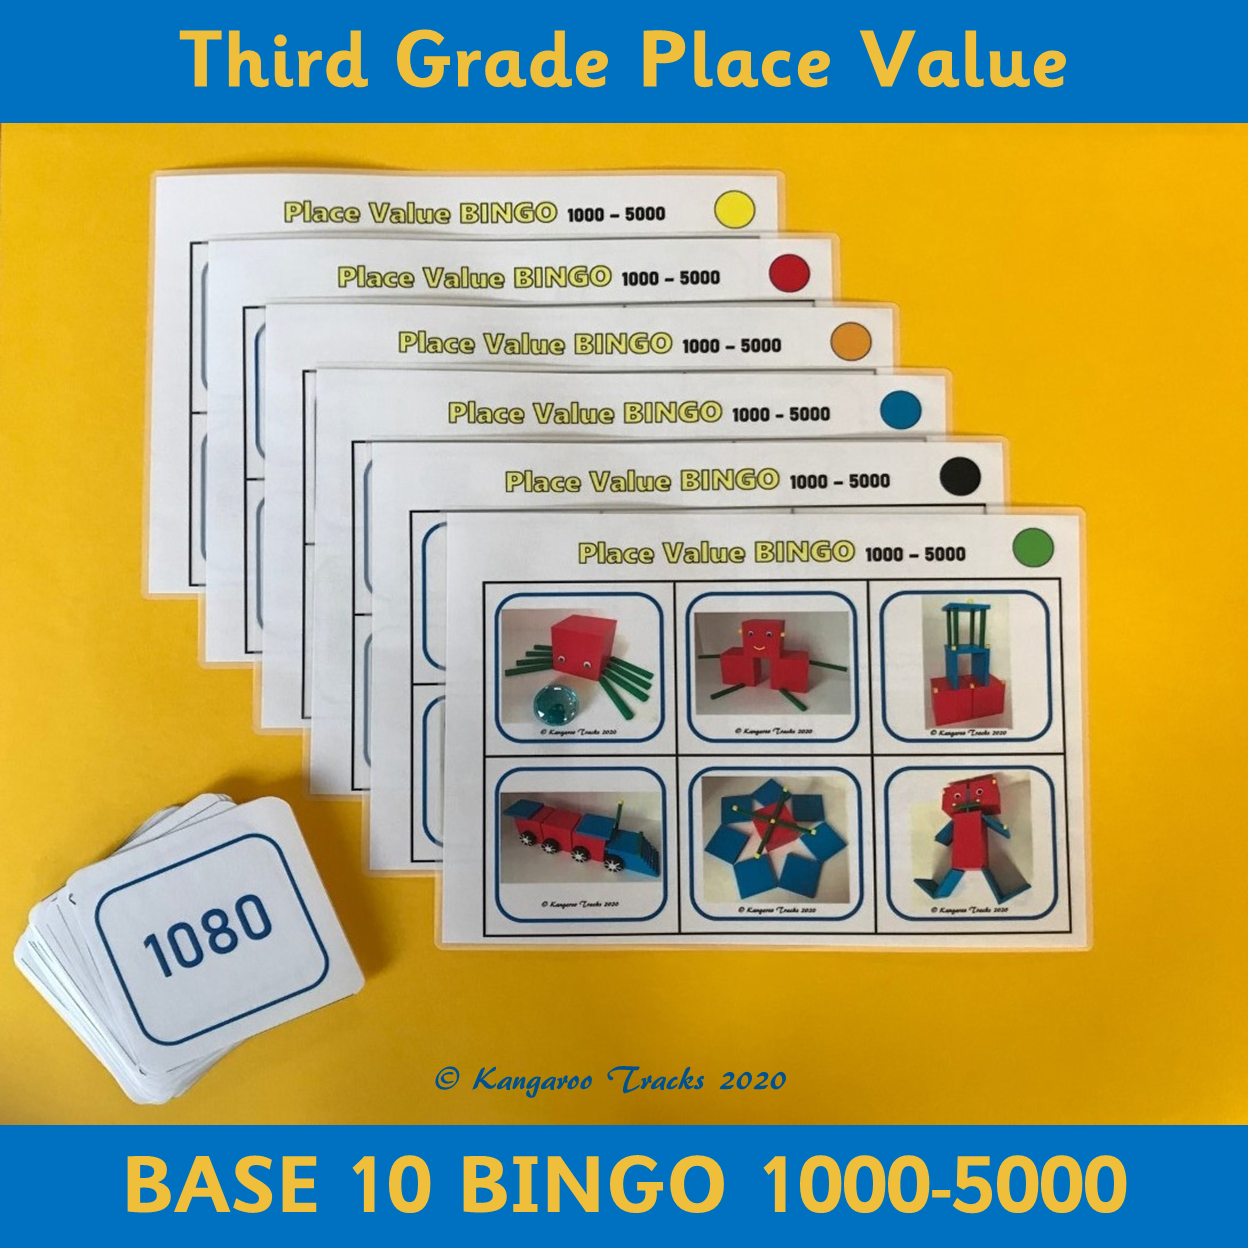 Base 10 Bingo 3rd Grade Place Value In